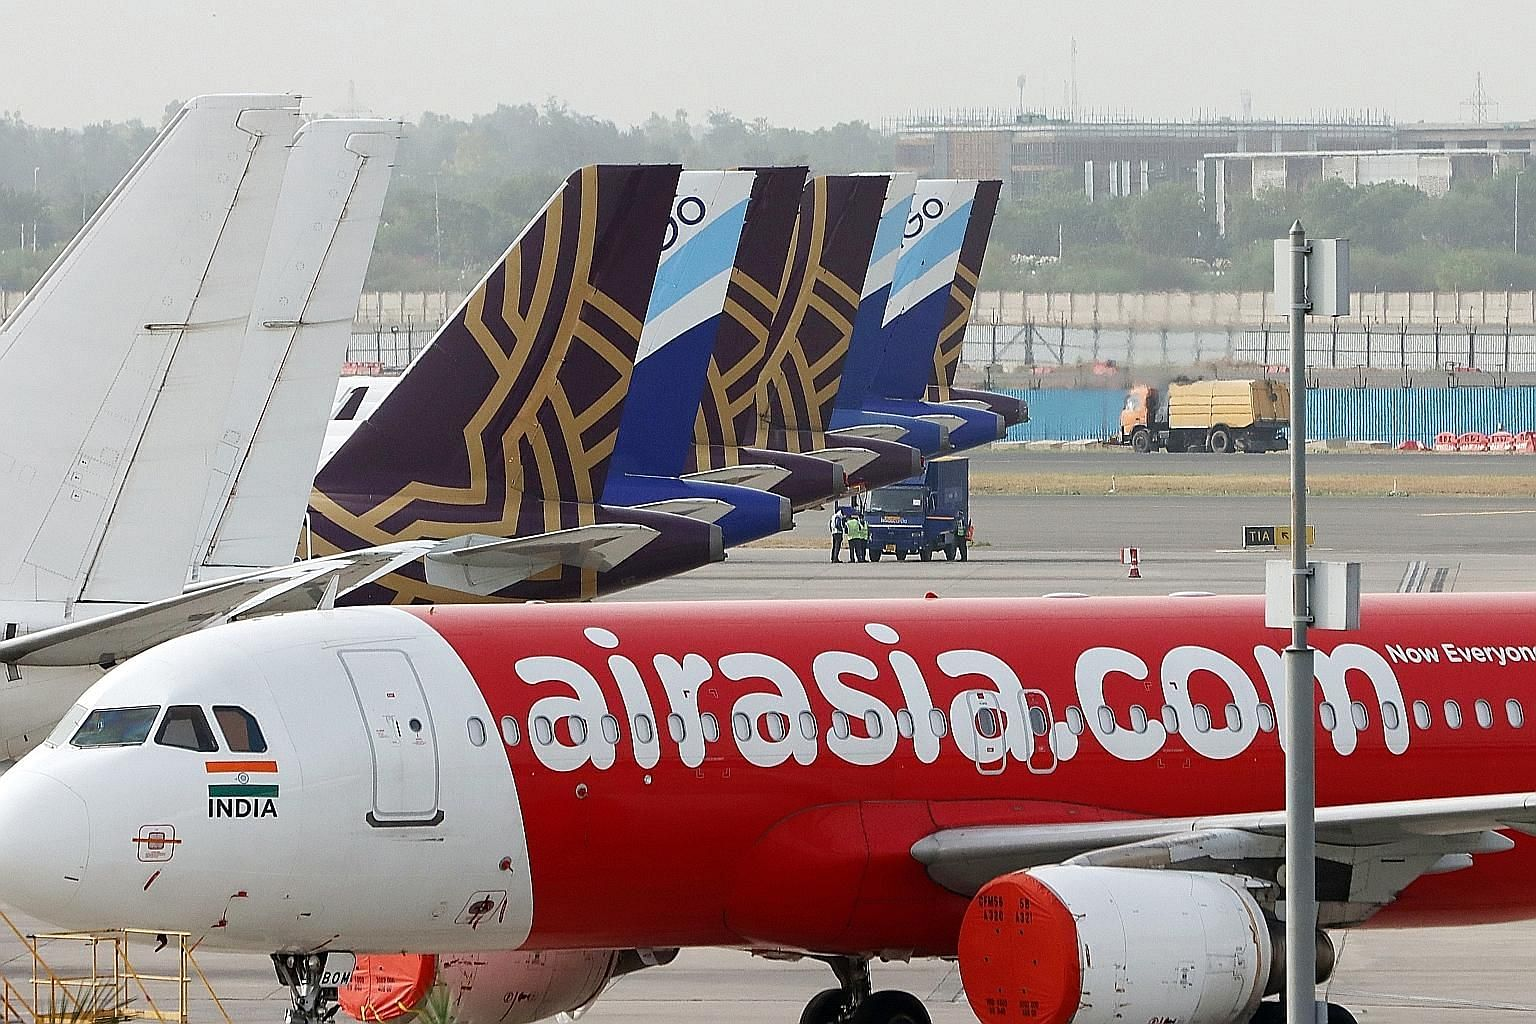 AirAsia, like other airlines, has been slammed by the coronavirus pandemic that has hammered demand for air travel. The airline said it has begun to cut jobs and salaries to save costs, and is working on extensions with lessors. PHOTO: BLOOMBERG